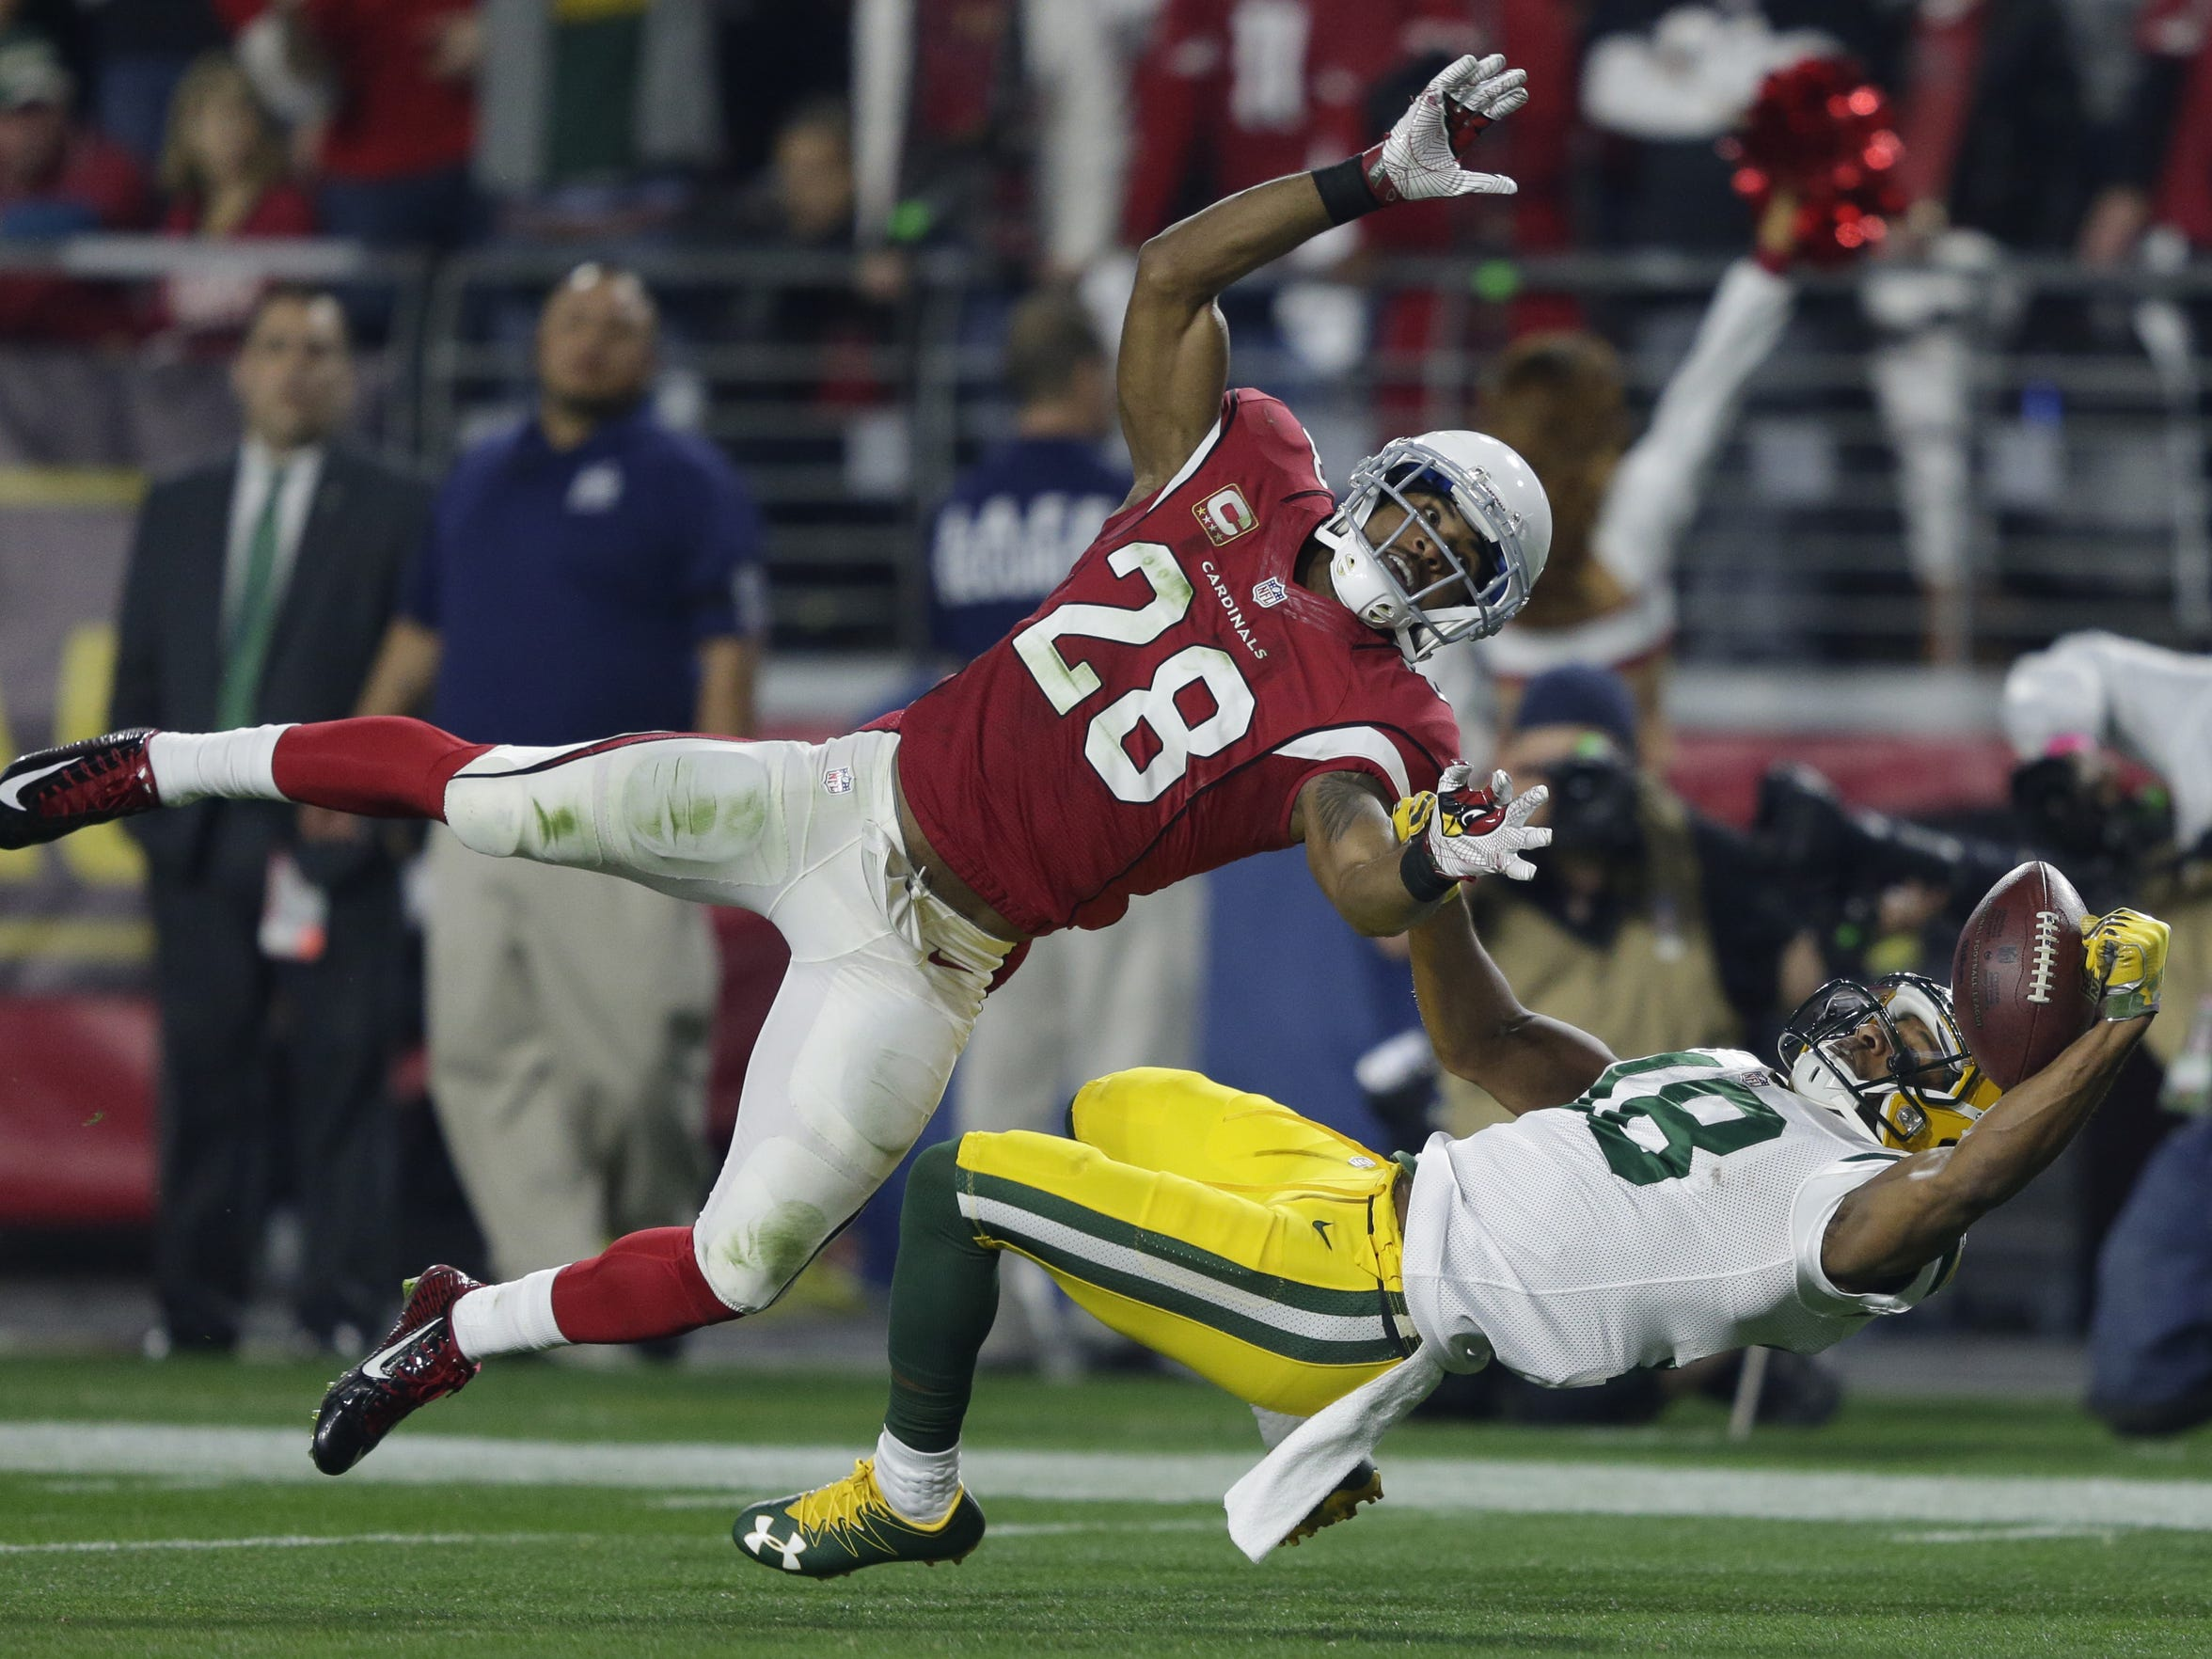 Green Bay Packers receiver Randall Cobb makes a leaping catch against Arizona Cardinals cornerback Justin Bethel in the first quarter. The catch was called back on off setting penalties and Cobb was injured on the play.